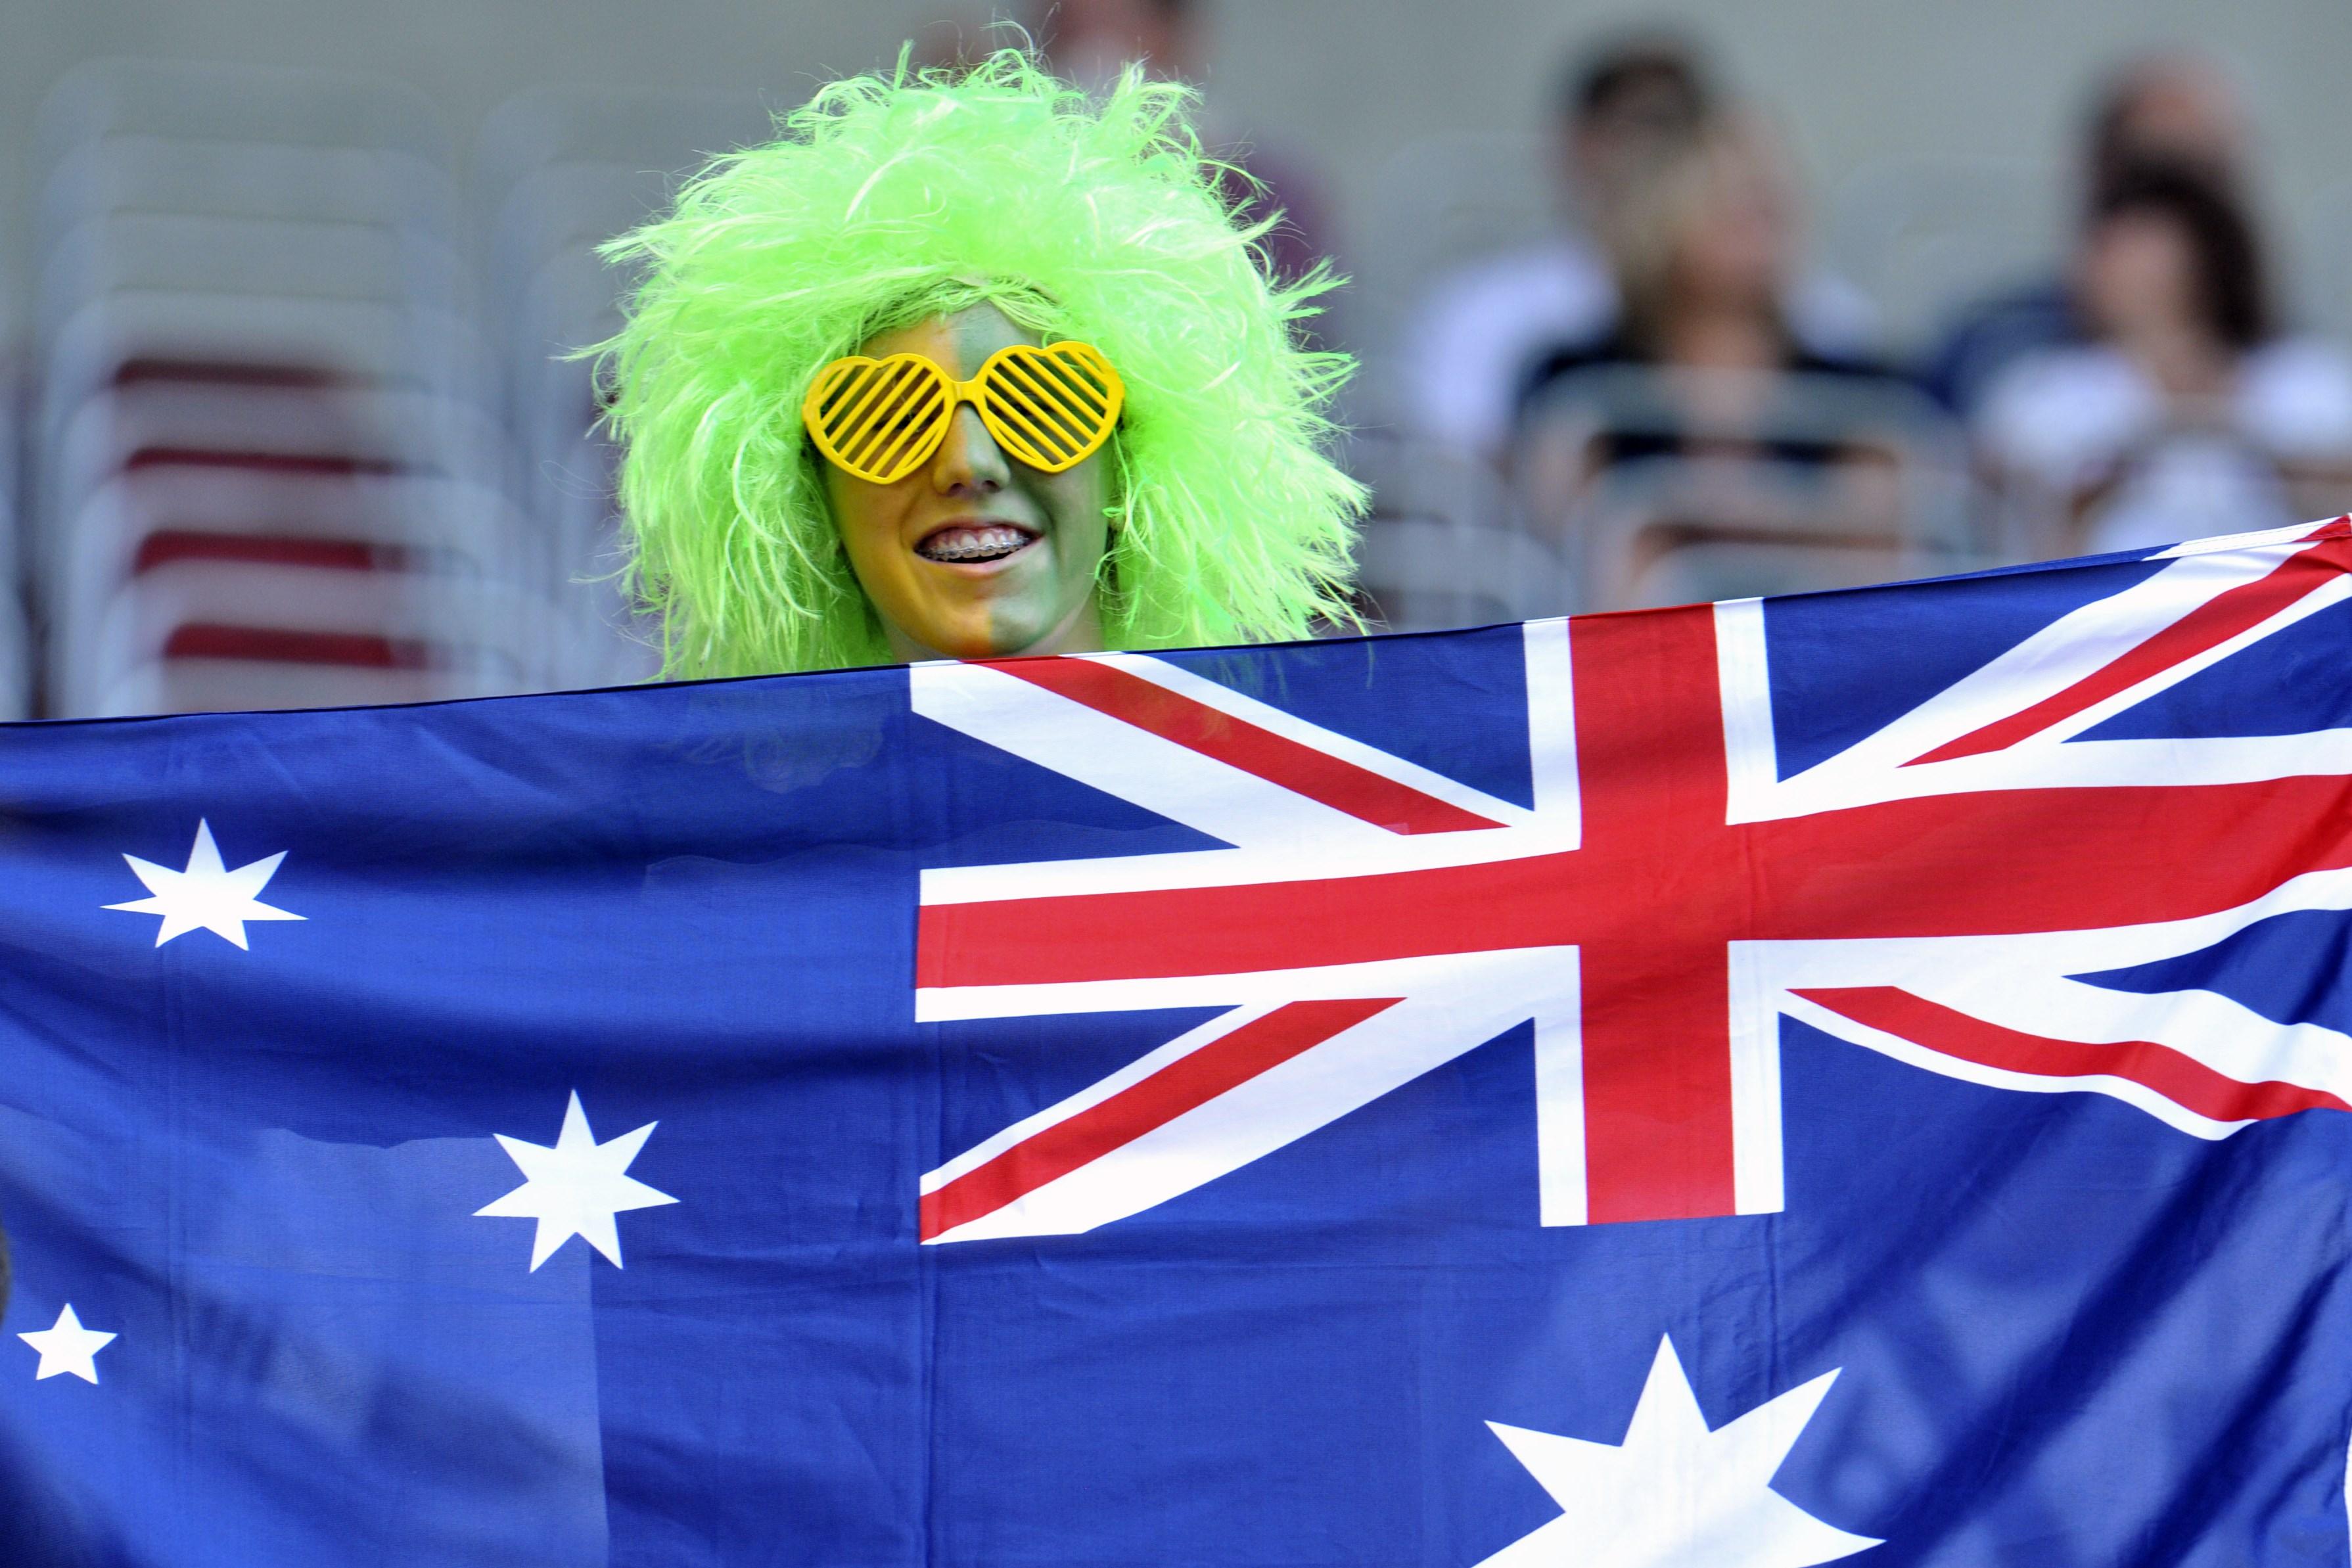 A soccer fan holds a flag on Australia before the quarterfinal match between Sweden and Australia at the Womens Soccer World Cup in Augsburg, southern Germany, on Sunday, July 10, 2011. (AP Photo/Kerstin Joensson)